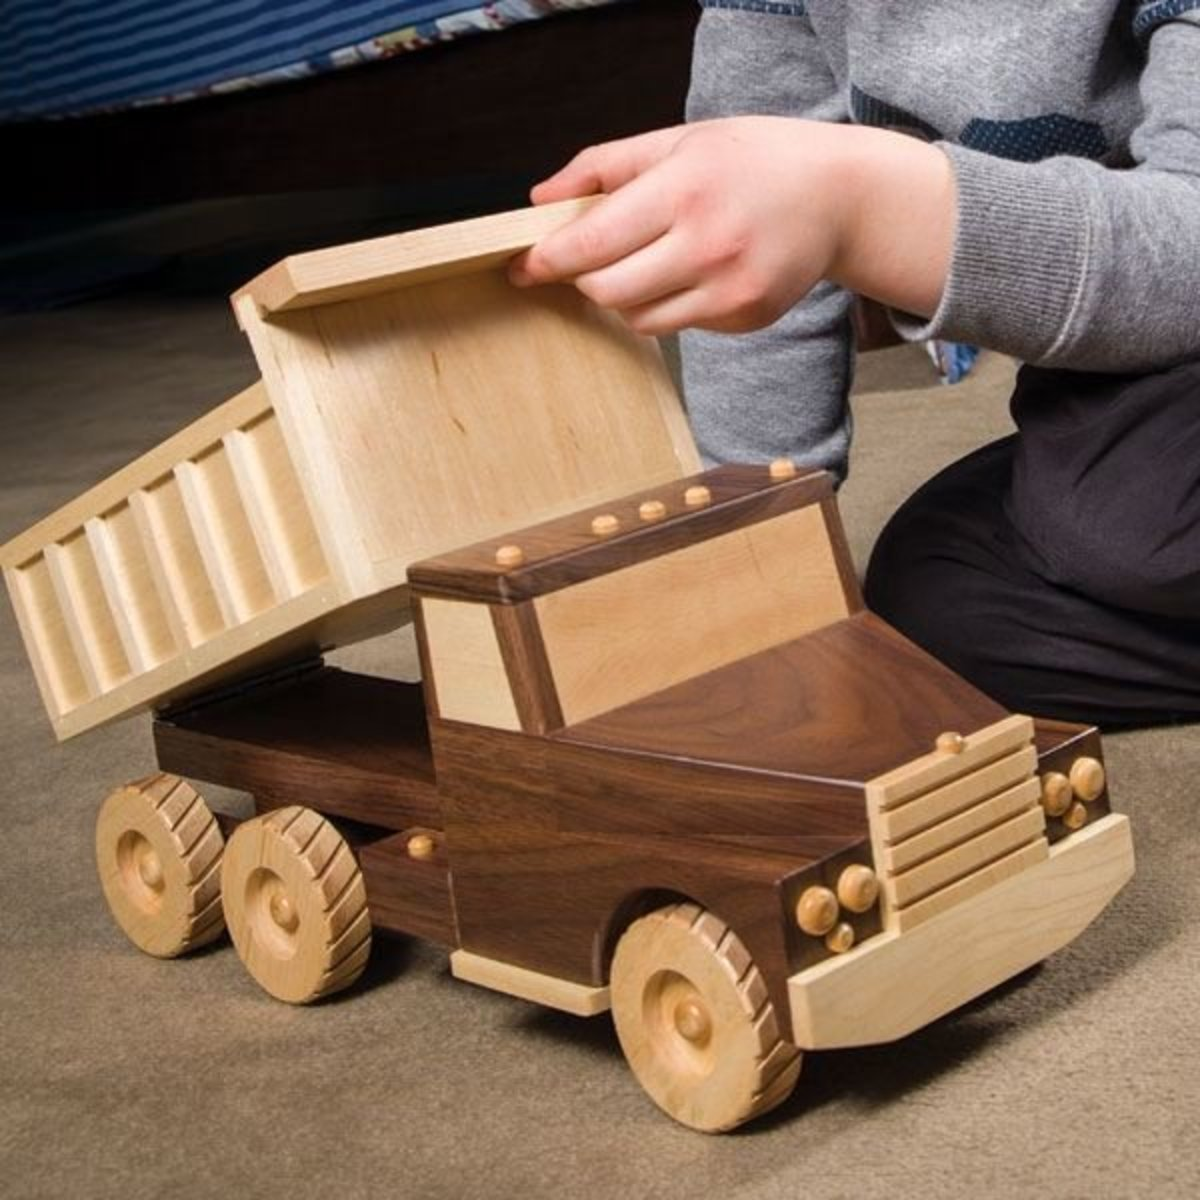 woodcraft magazine - tough enough dump truck - downloadable plan